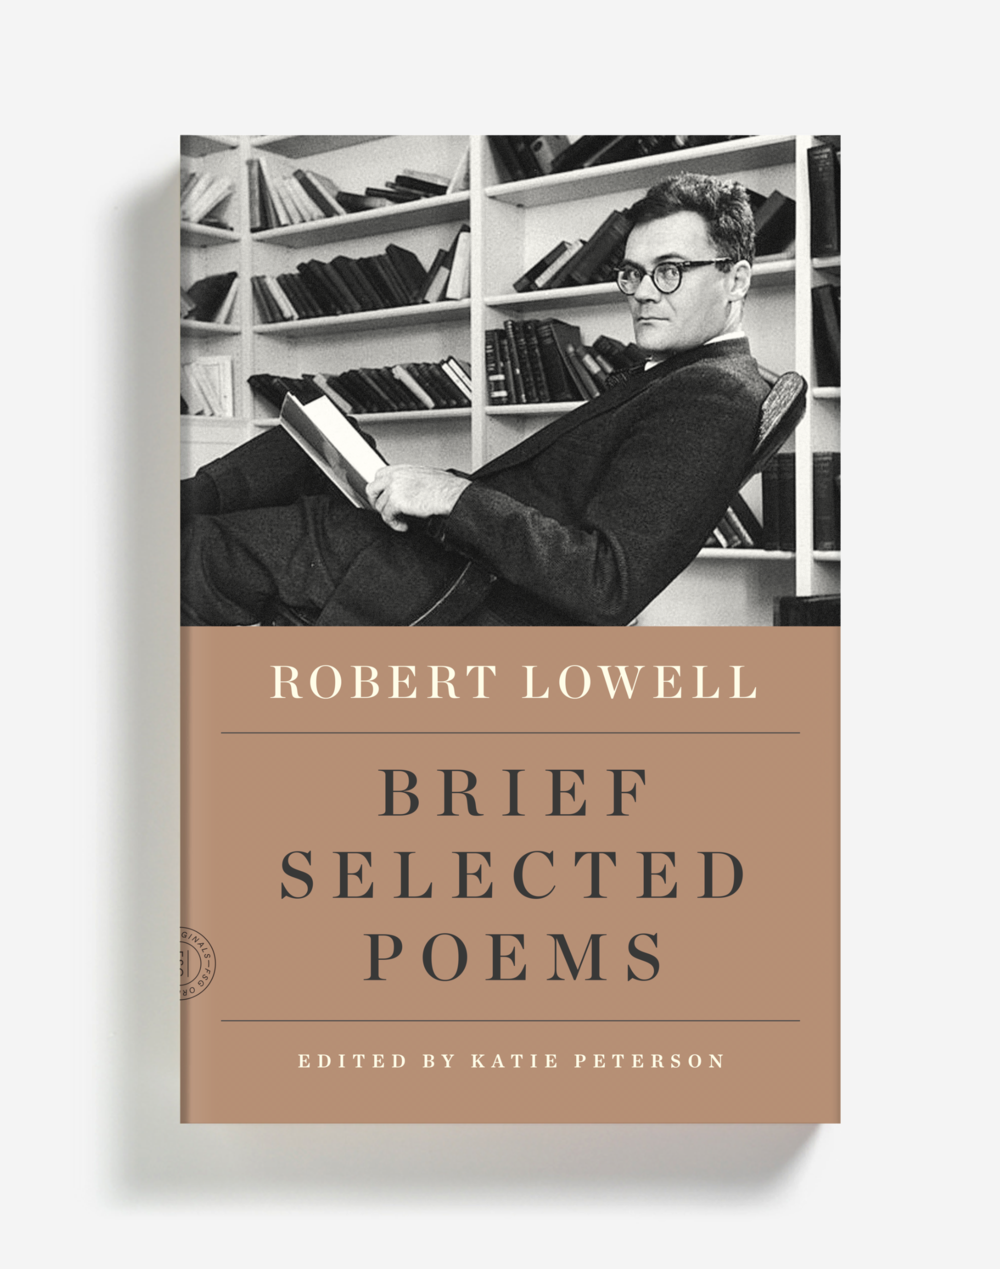 "New Selected Poems - ""Robert Lowell is a poet who reveals our own idiosyncrasies as readers whether we read him or not. With full sympathy for not having any dominant literary culture or personalities ever again, people are crazy if they go too sour on Lowell. As Katie Peterson makes clear in her New Selected Poems, which is a beautiful and idiosyncratic edition with a superb introduction, he is a poet of immense range and subtlety, a poet whose poems are 'memorable for their language, not simply the vanishing facts of story' and who 'remained constitutionally immune to any stultifying permanence either of form or of spirit.'""- David Blair, StorySouth"